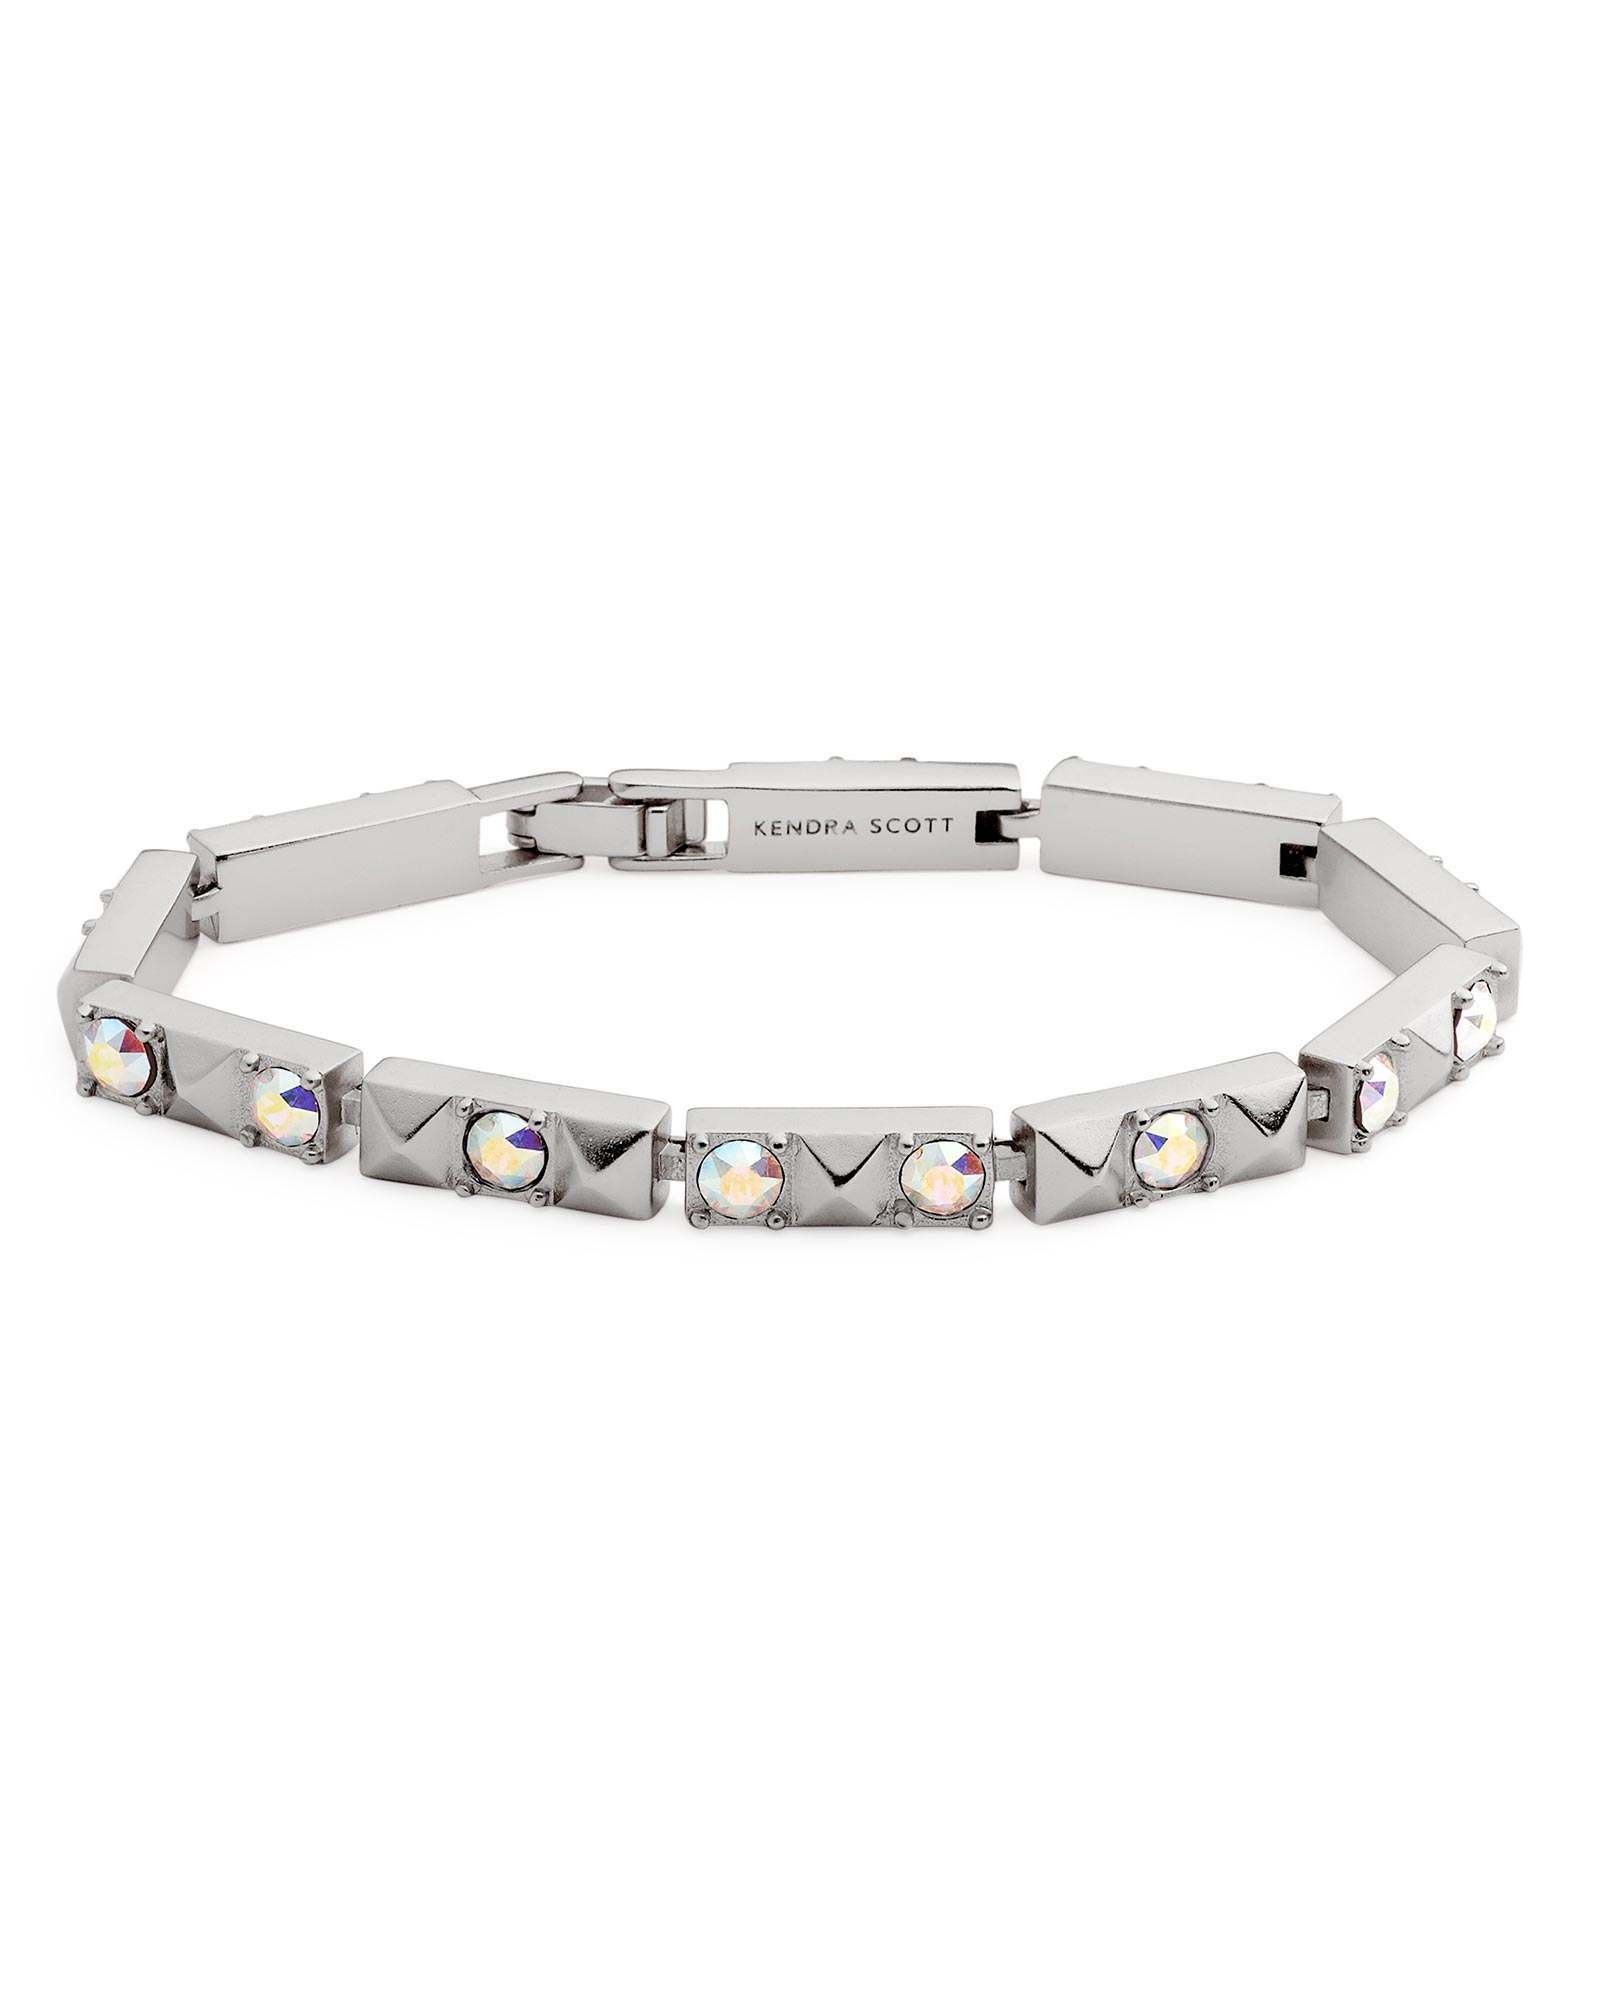 Phillipe Link Bracelet